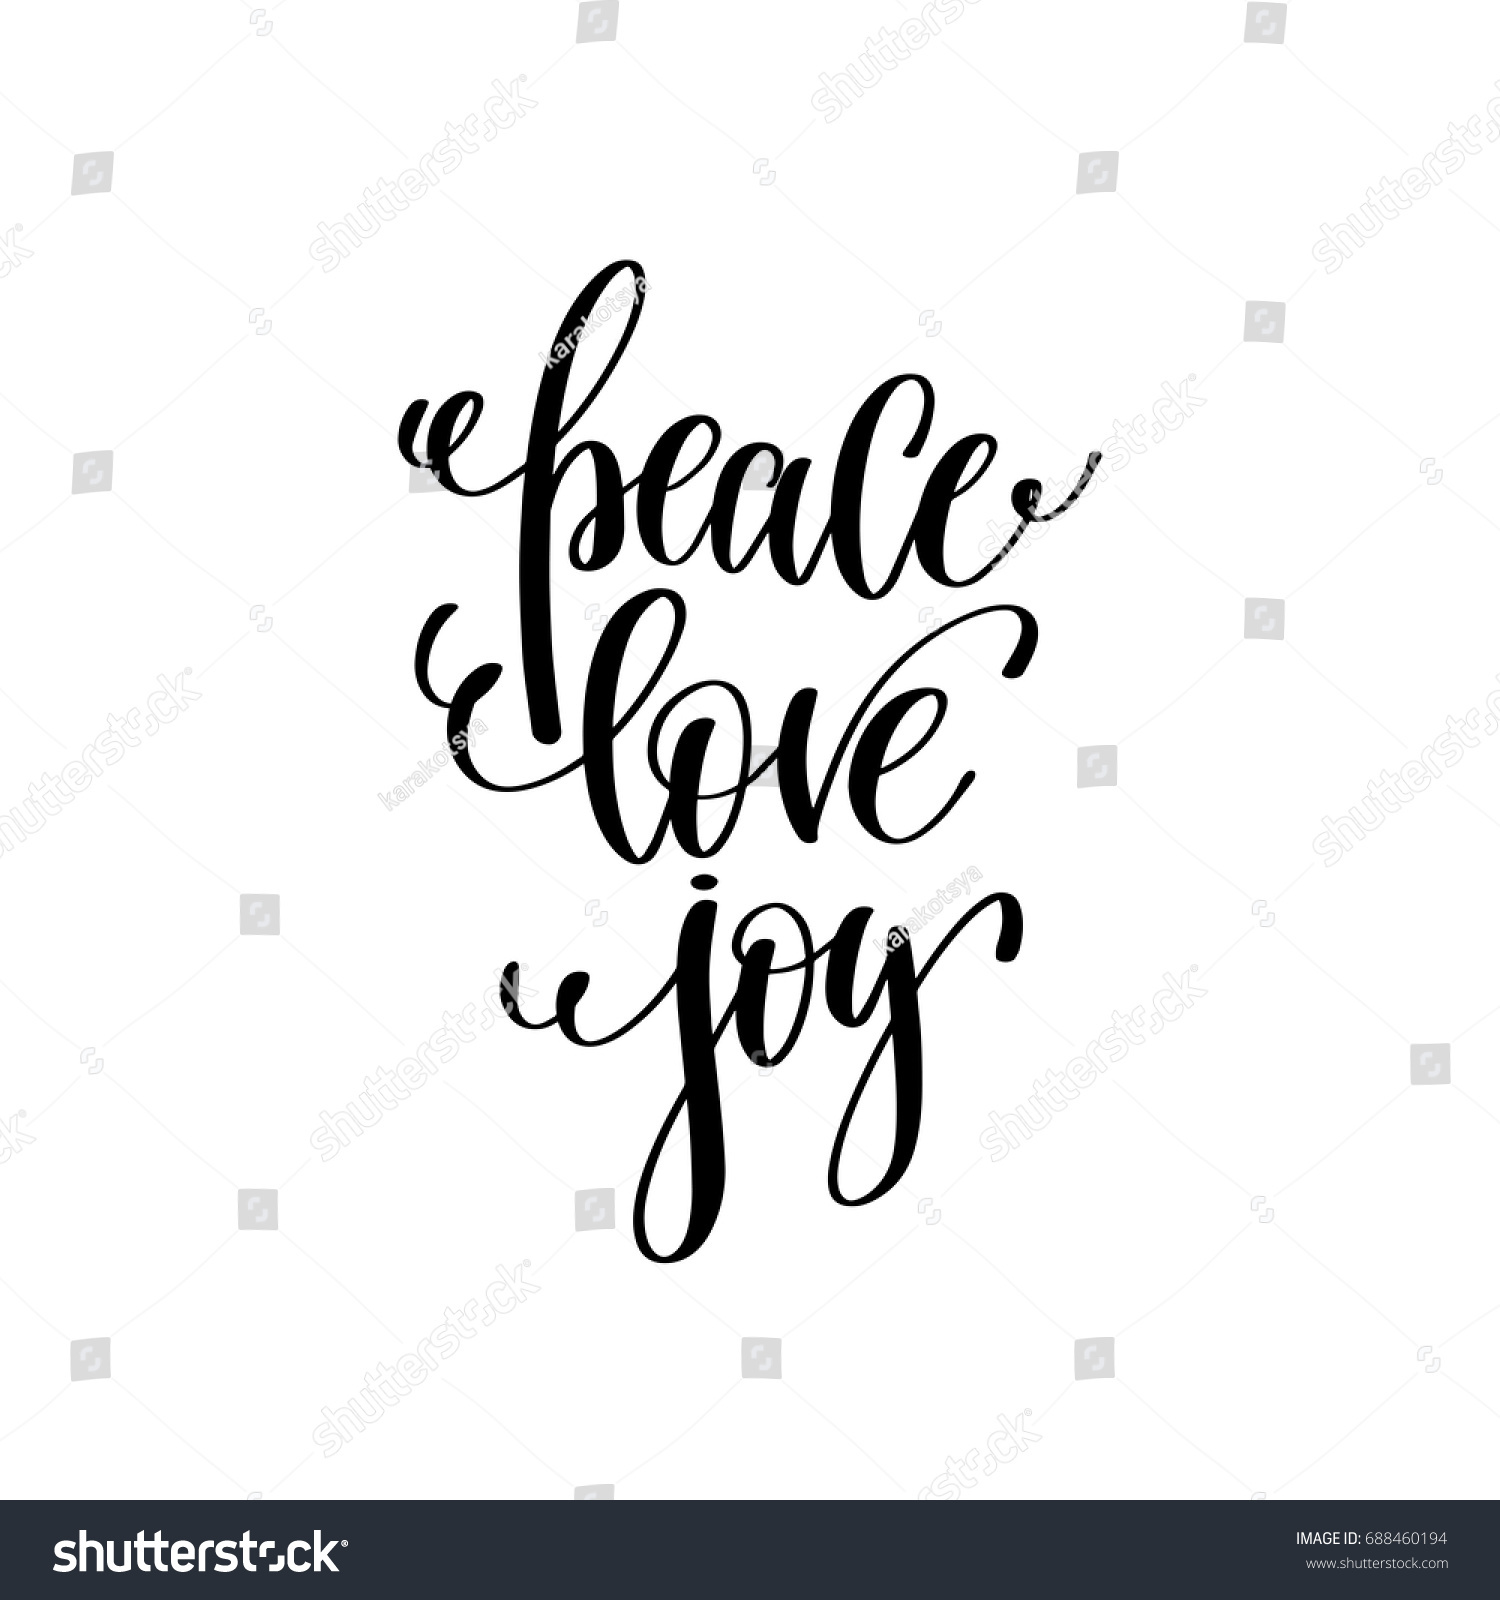 Peace Love Joy Quotes Peace Love Joy Hand Lettering Positive Stock Vector  688460194